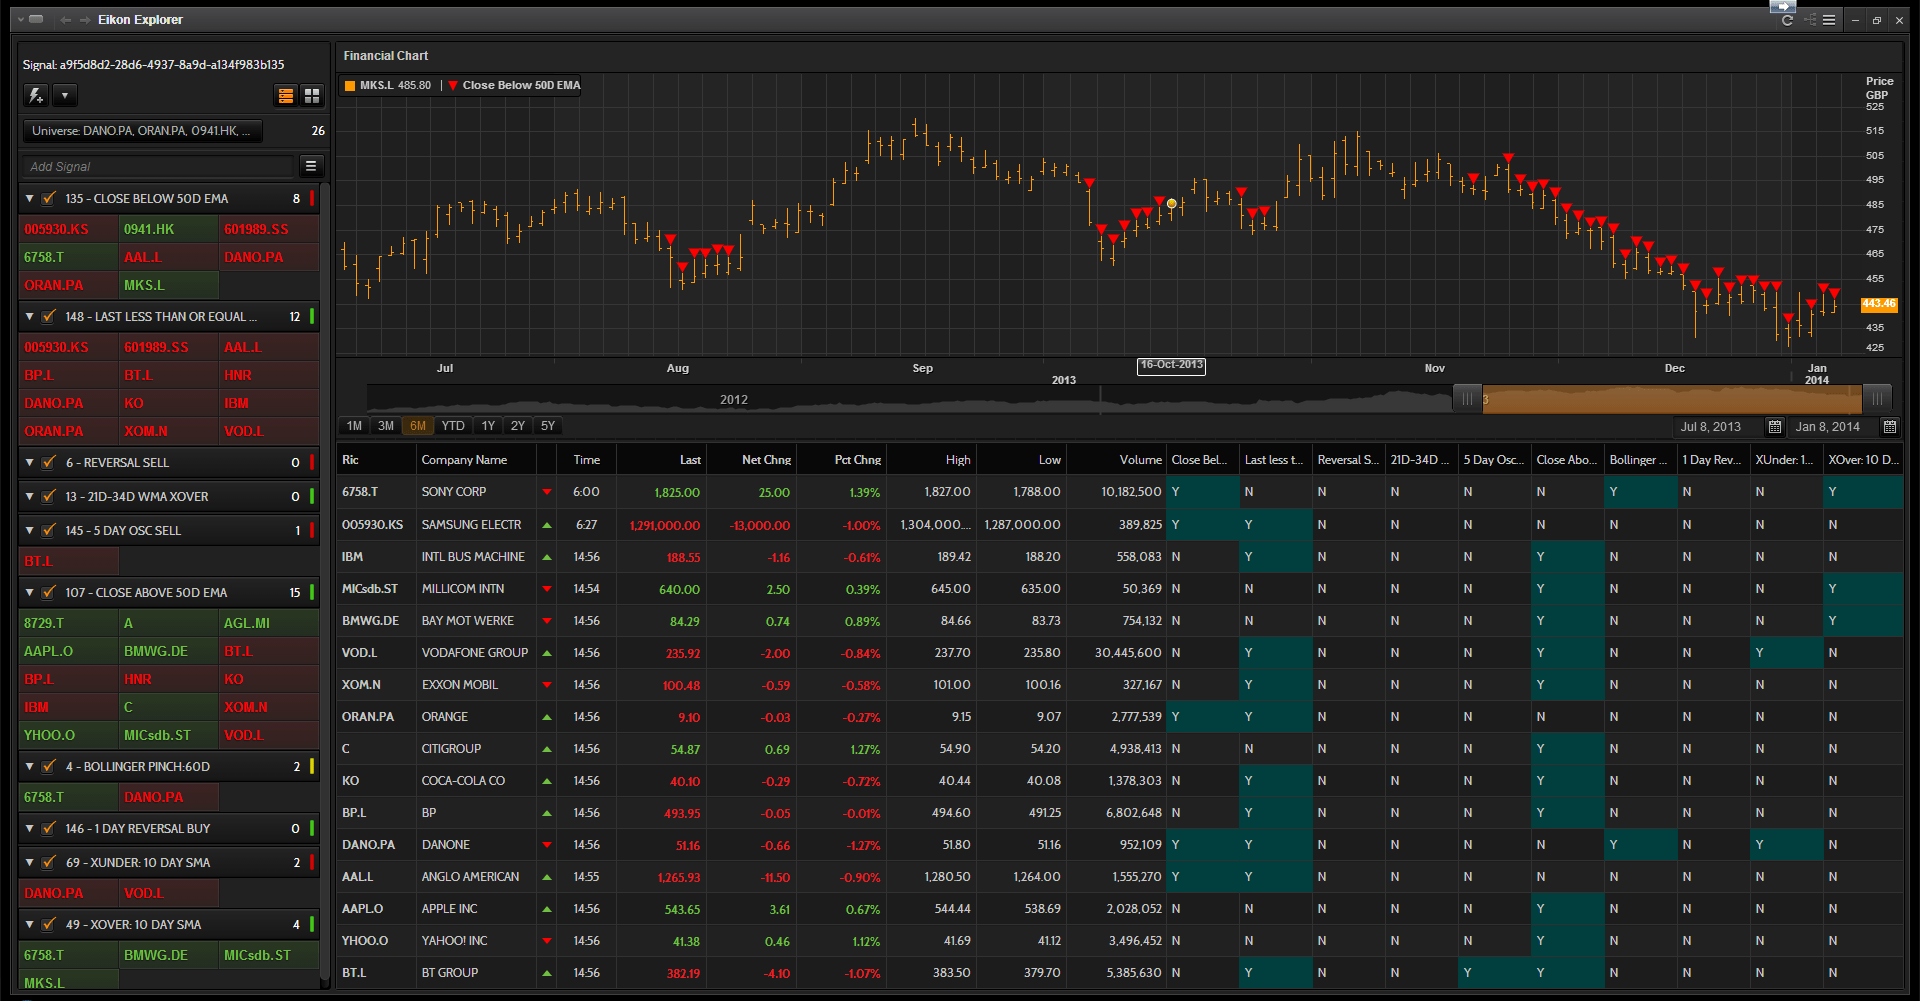 Eikon Explorer, a competitor to the Bloomberg Terminal